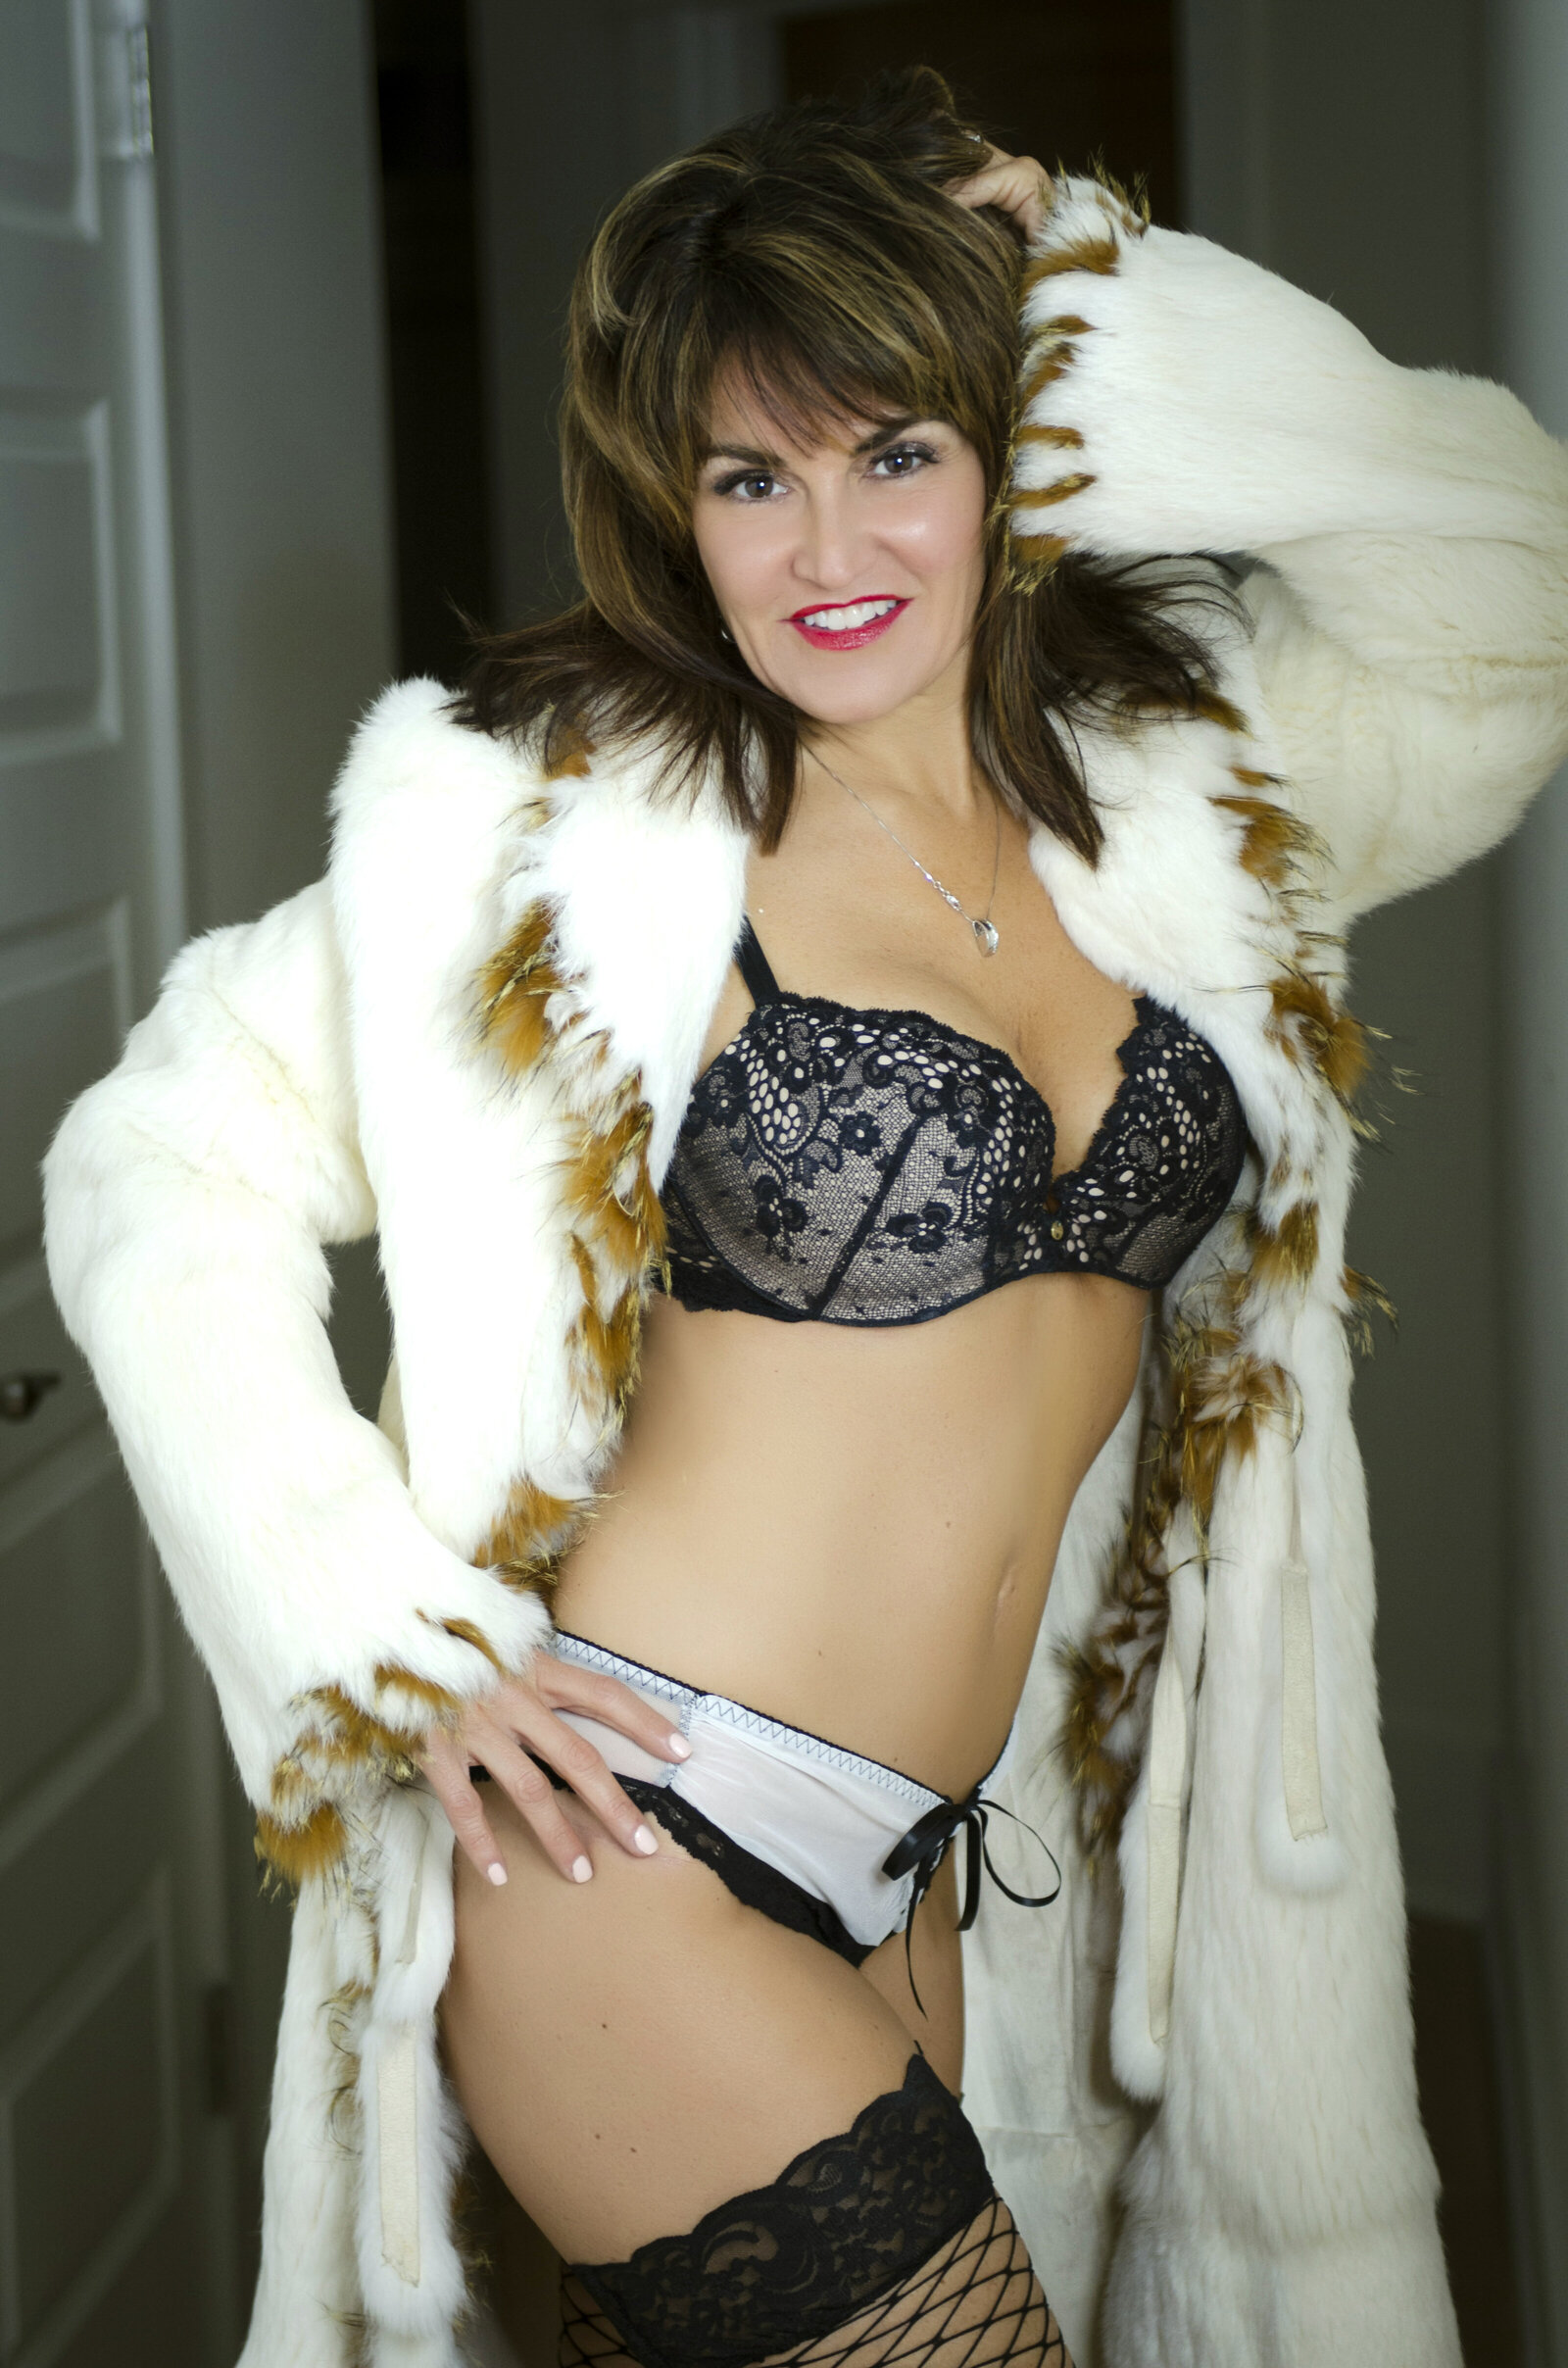 older woman boudoir photos032